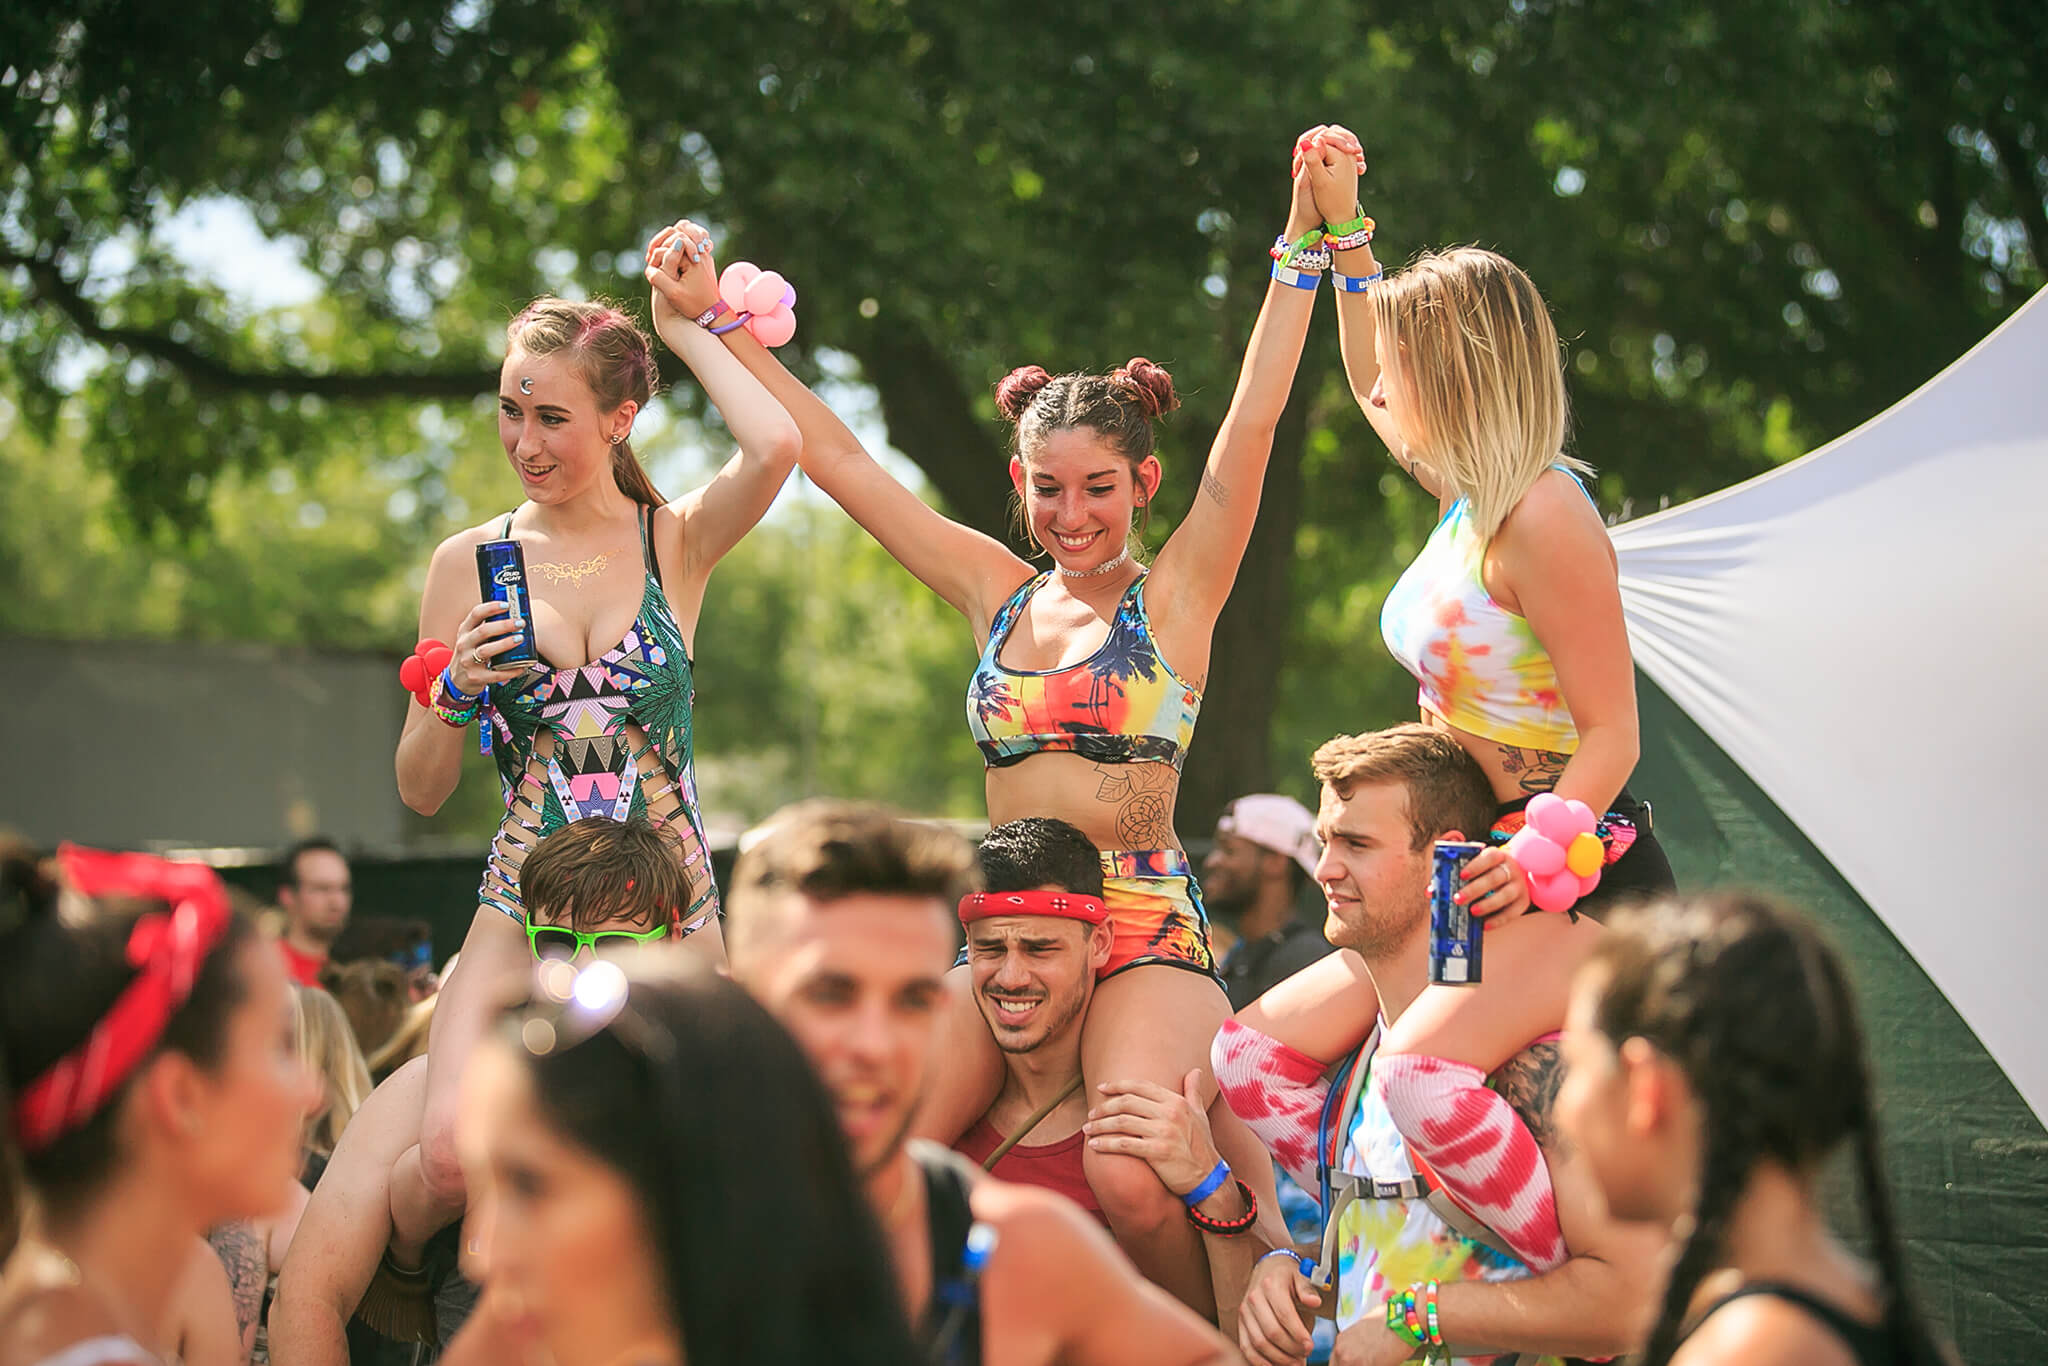 festive fans at sunset music festival